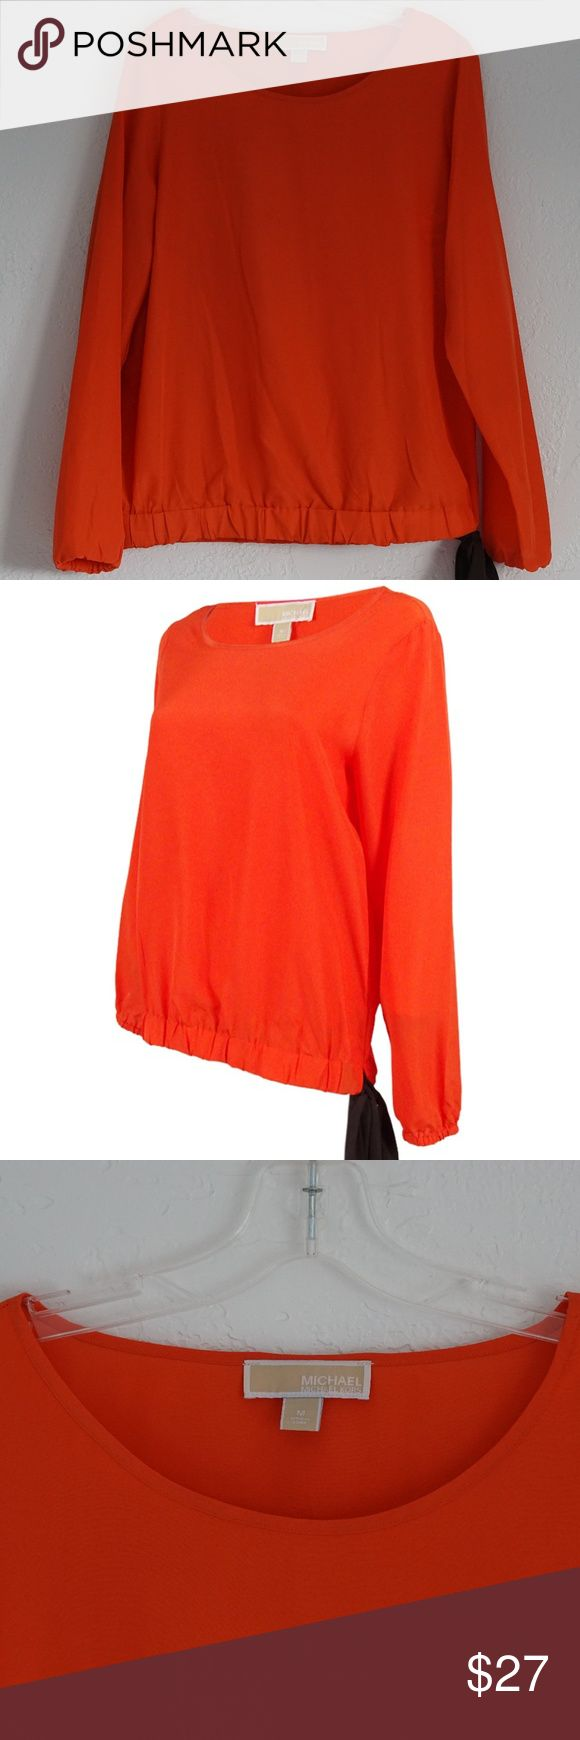 Michael Kors Women's Long Sleeve Tie Hem Top Orange Long-sleeve top boasts a surprise finish in the form of a contrasting chiffon tie at the hem in the color black.   MEASUREMENTS Length: 24 1/2 inches Hem: 18 inches Arm Length: 24 inches Pit-to-Pit: 20 inches  SHIPS WITHIN 24 HOURS Priced too high? Make an offer. Create a bundle and save some $$$. A11 Michael Kors Tops Blouses